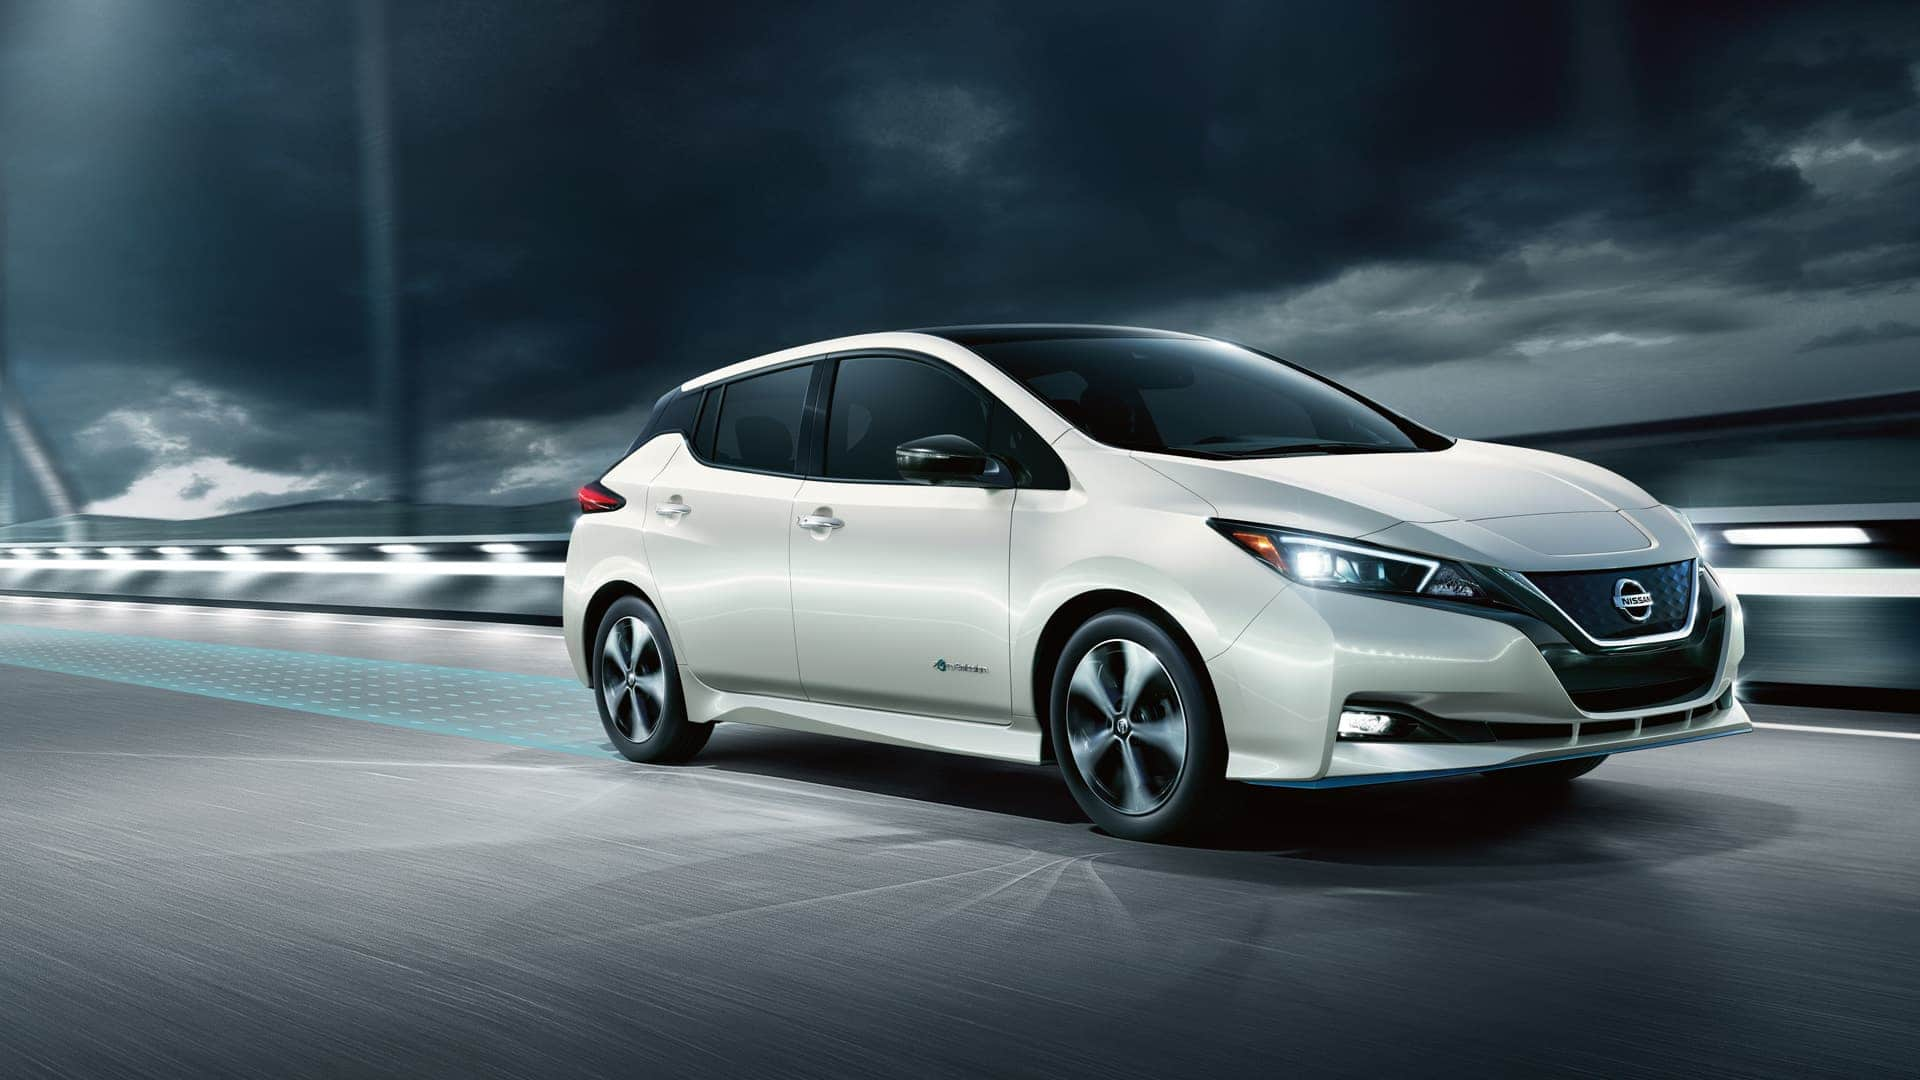 2019 Nissan Leaf | Electric Cars For Sale Near Me | Omaha